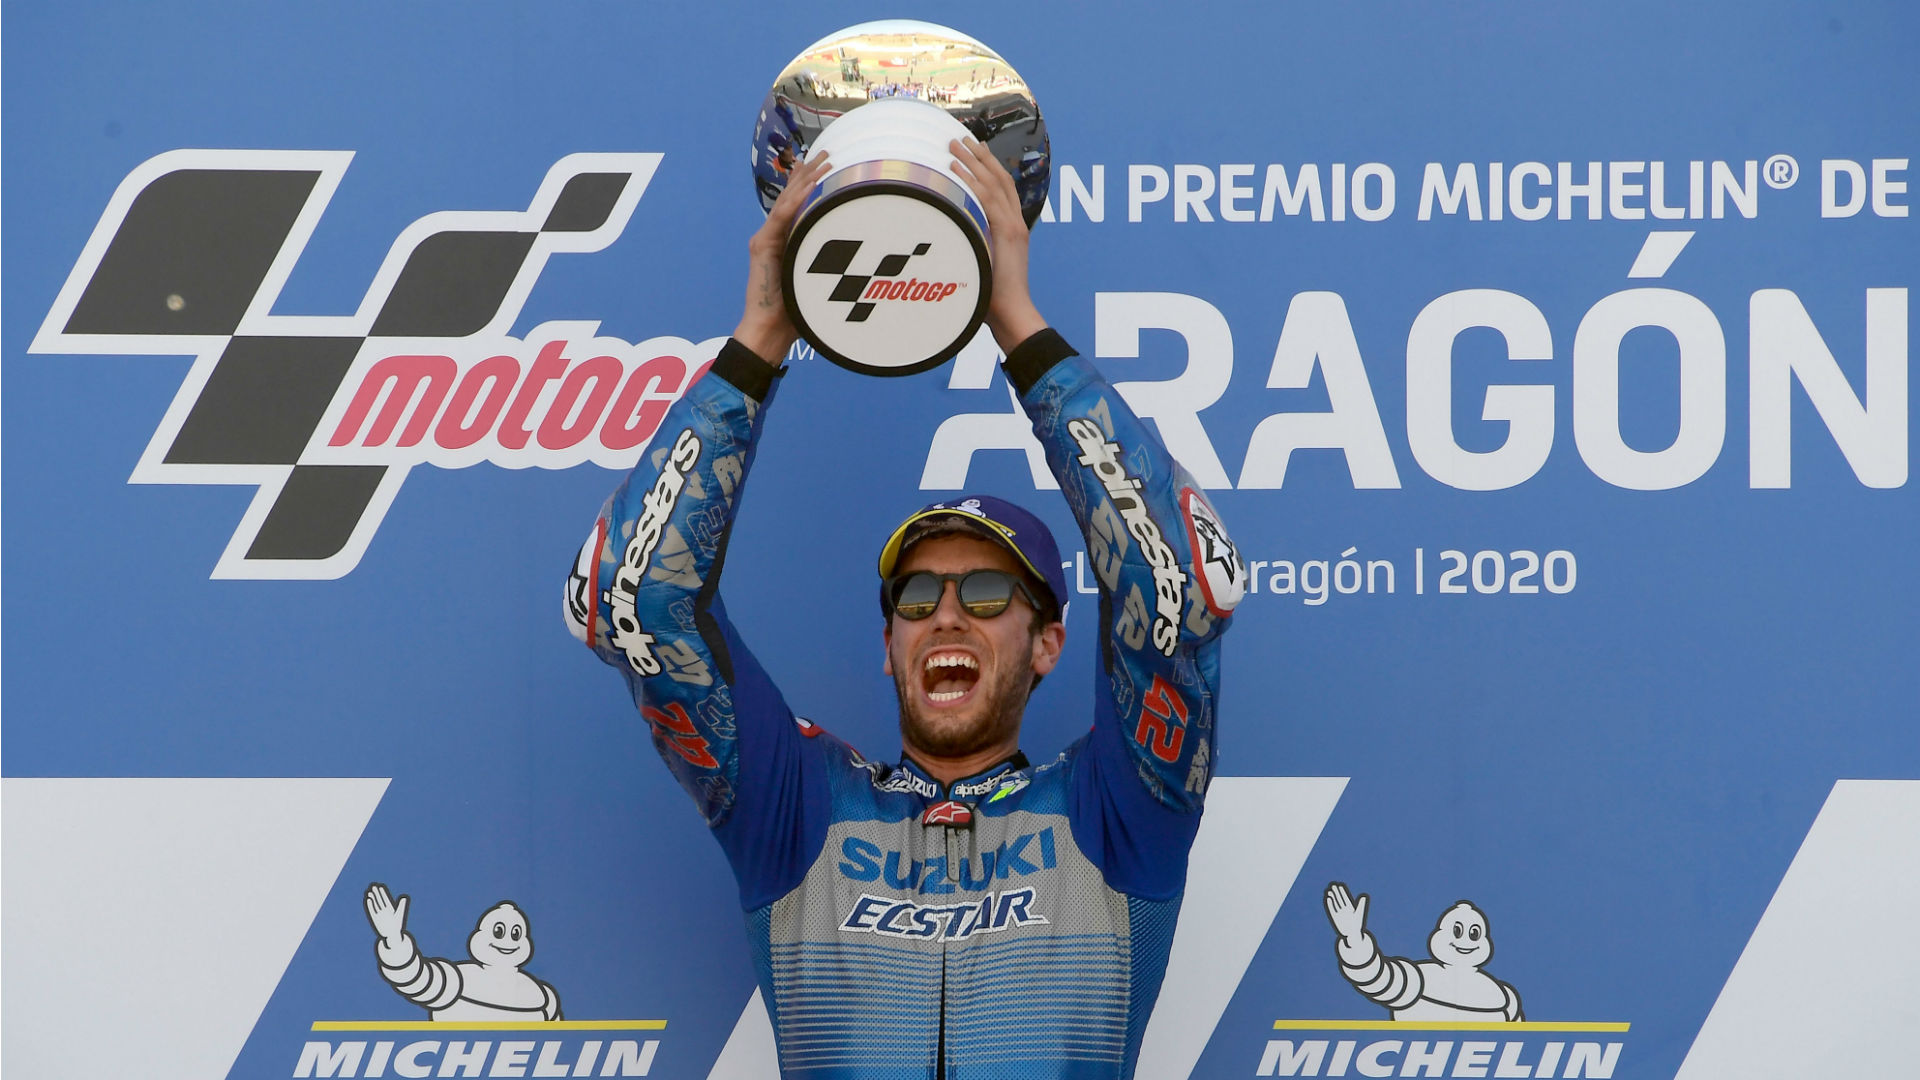 Alex Rins and Alex Marquez enjoyed fine displays at MotorLand, though new world championship leader Joan Mir was left slightly frustrated.